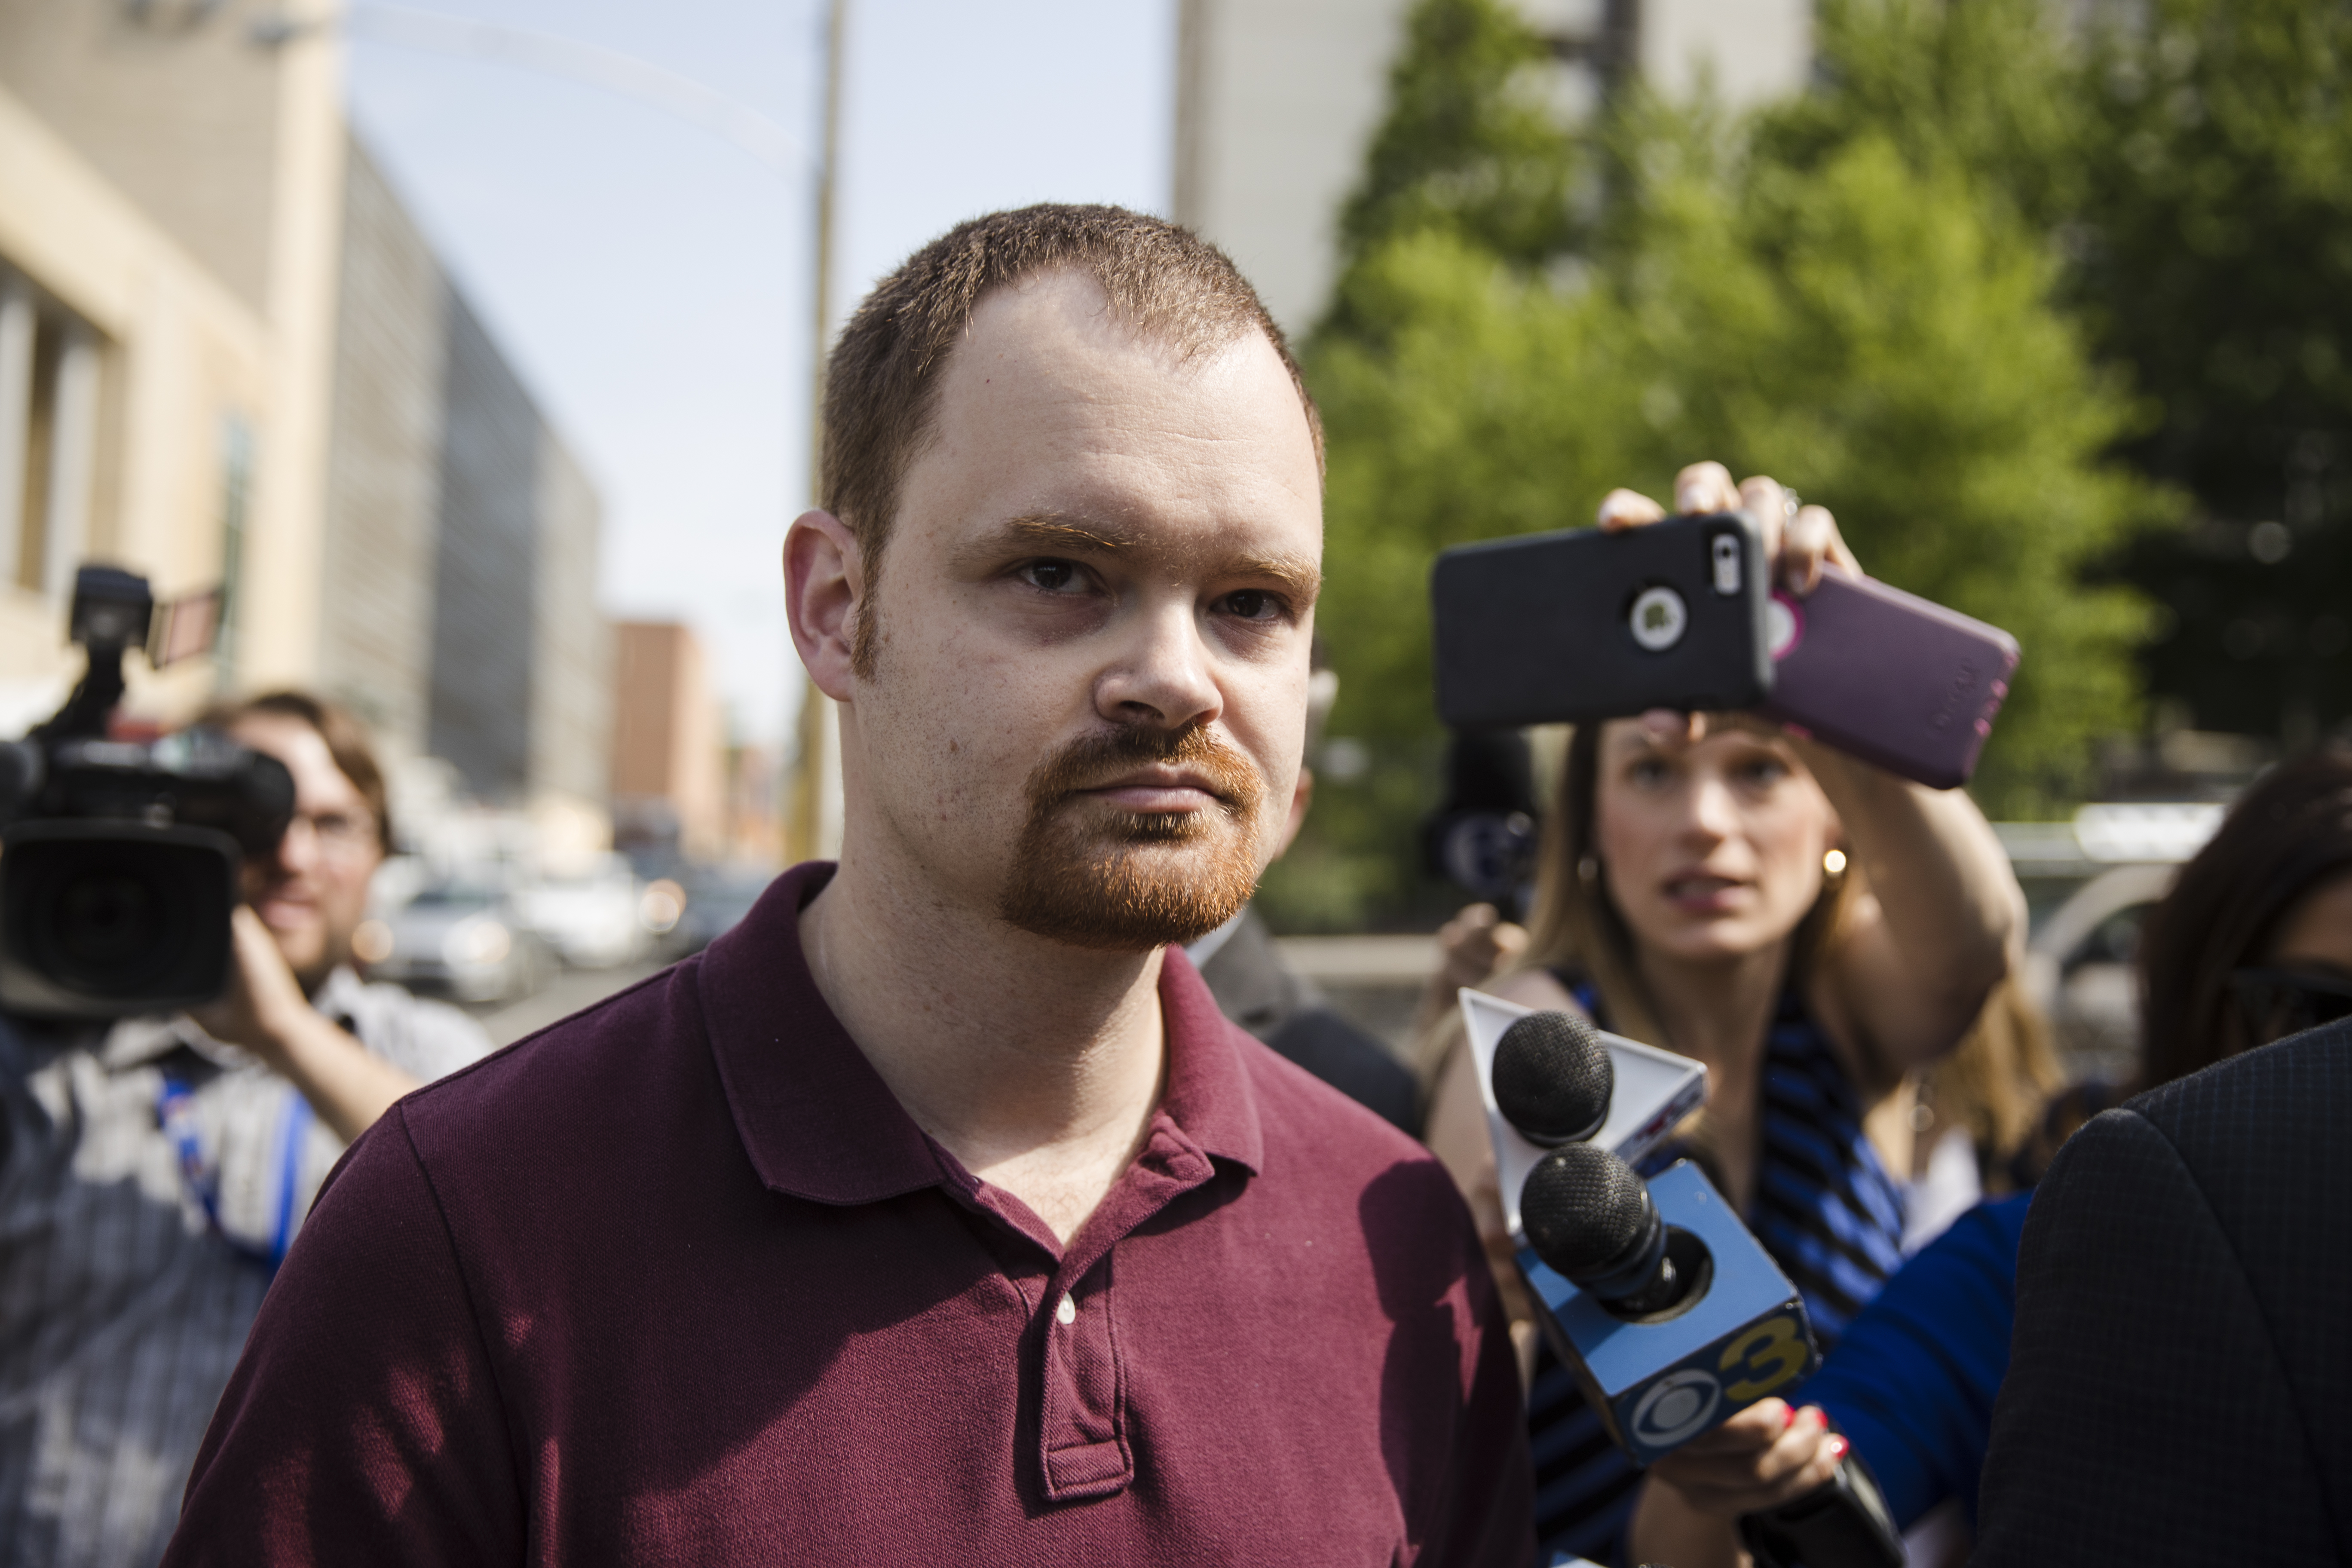 Brandon Bostian, the Amtrak engineer involved in a fatal train crash two years ago, walks to a police station in Philadelphia on Thursday, May 18, 2017, to turn himself in to answer charges including causing a catastrophe and involuntary manslaughter.